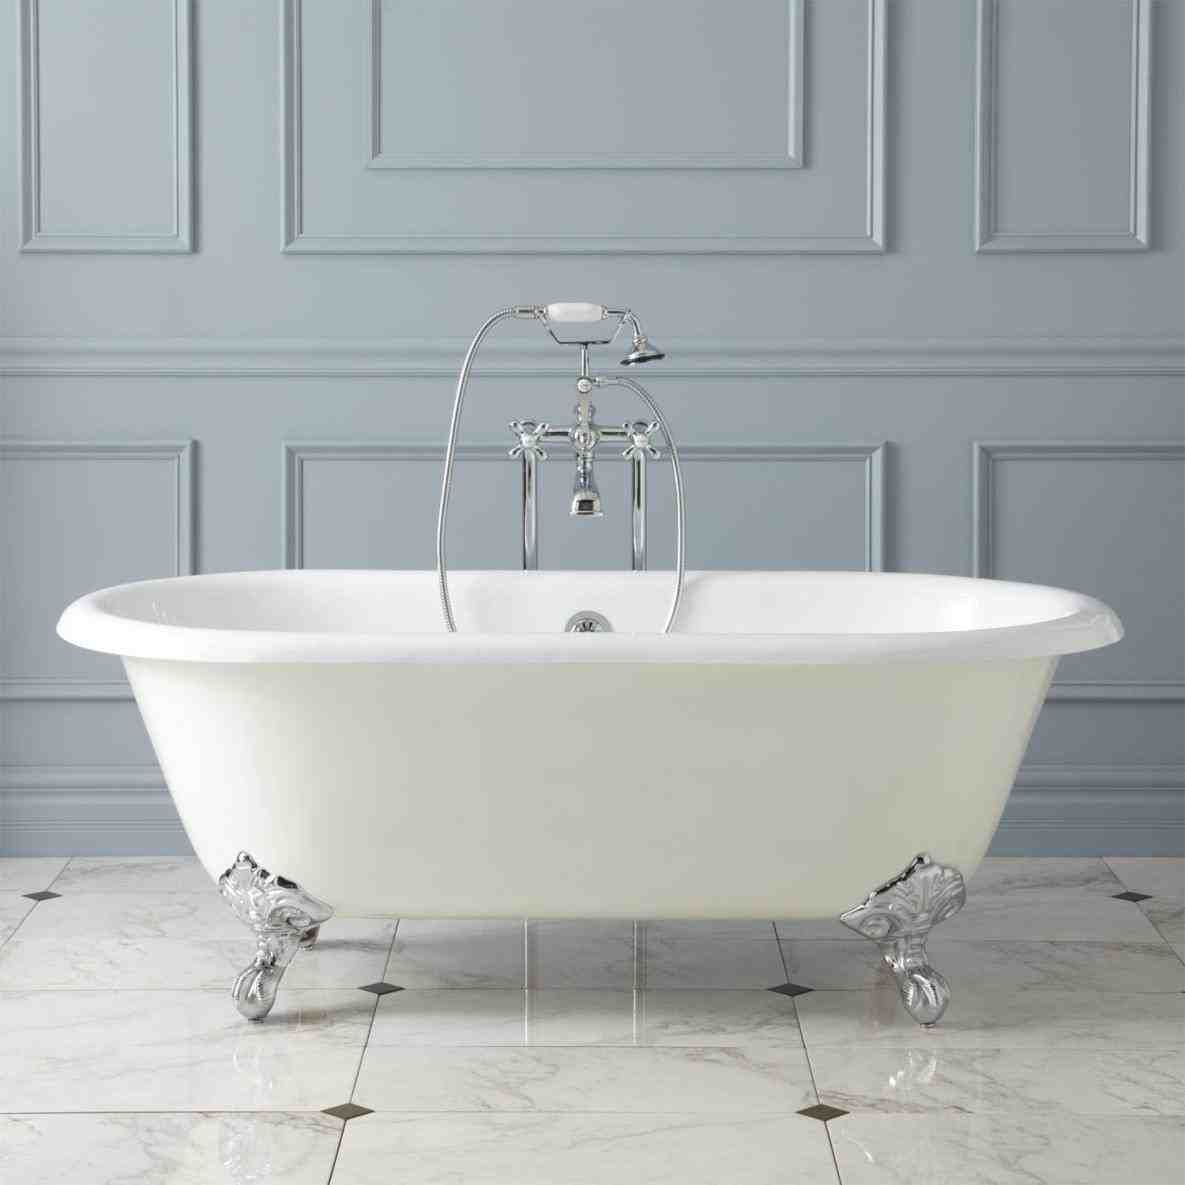 New Post cheap bathtubs for sale visit bathroomremodelideass.club ...